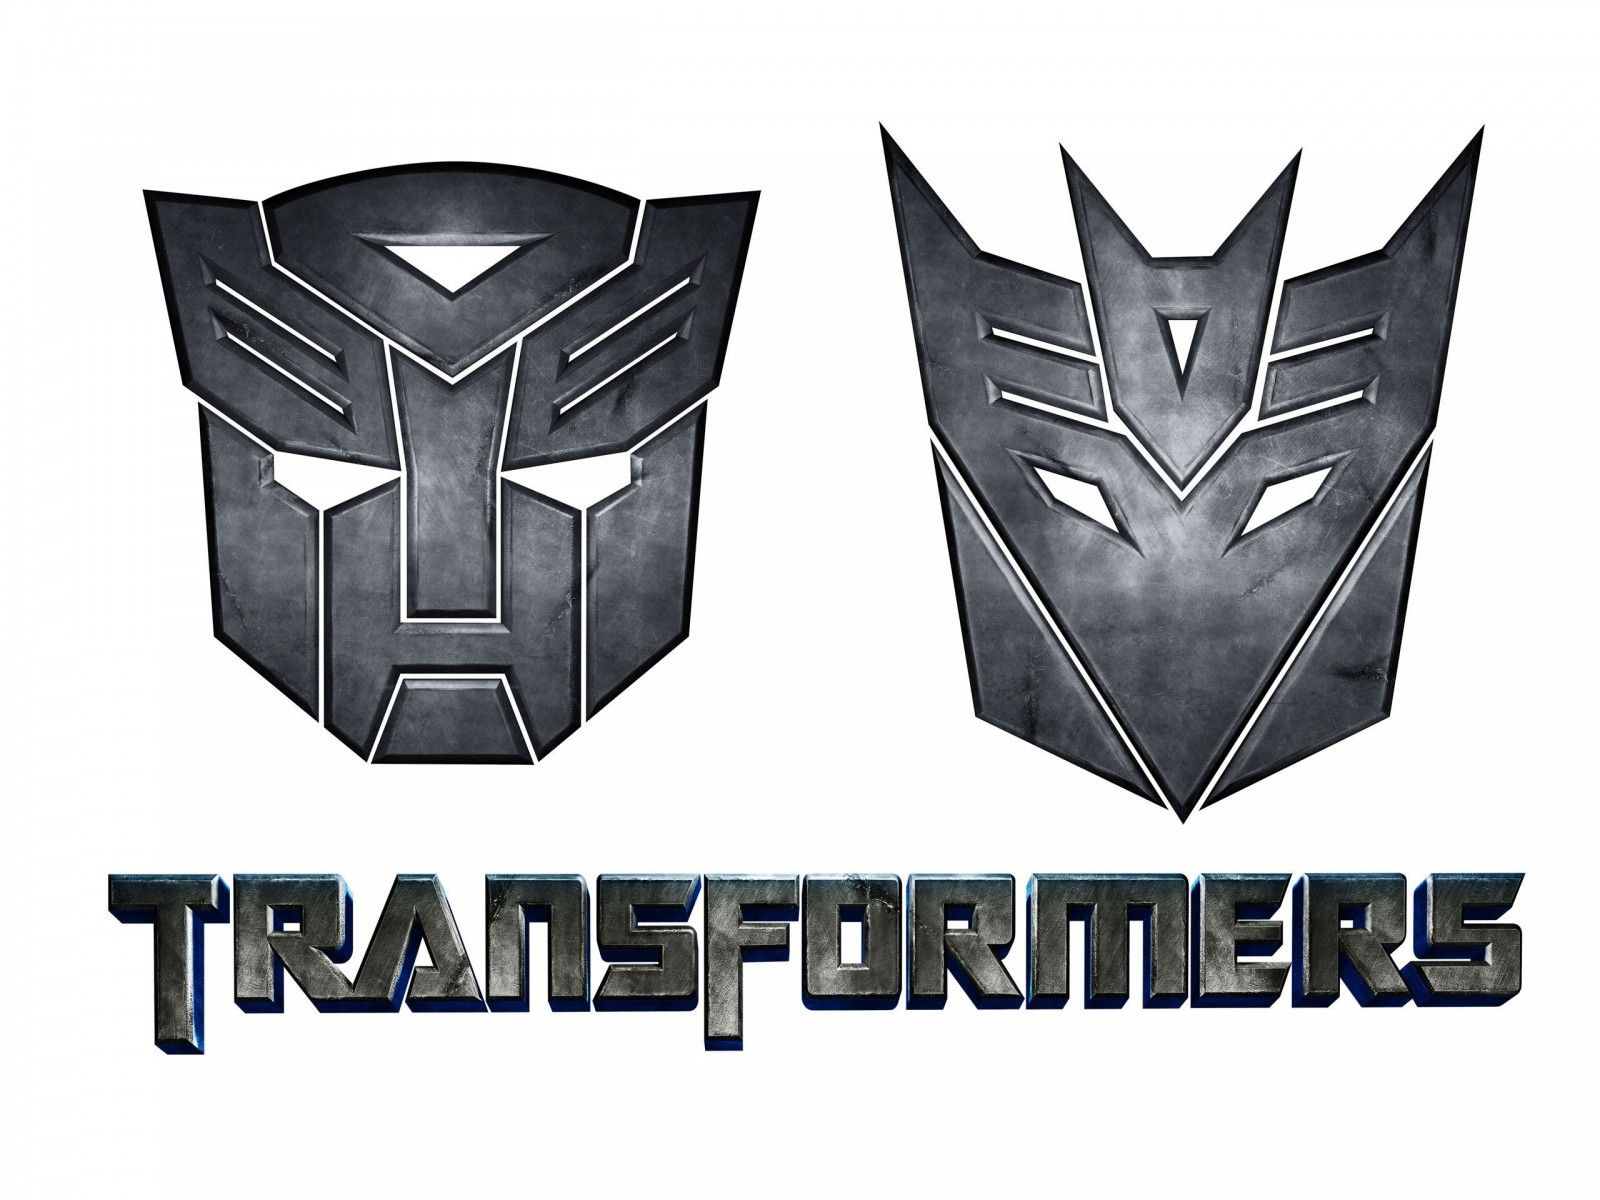 Transformers News: Hasbro CEO Brian Goldner Talks Stock Rebound, Media Acquisitions, Strength of Transformers Brand